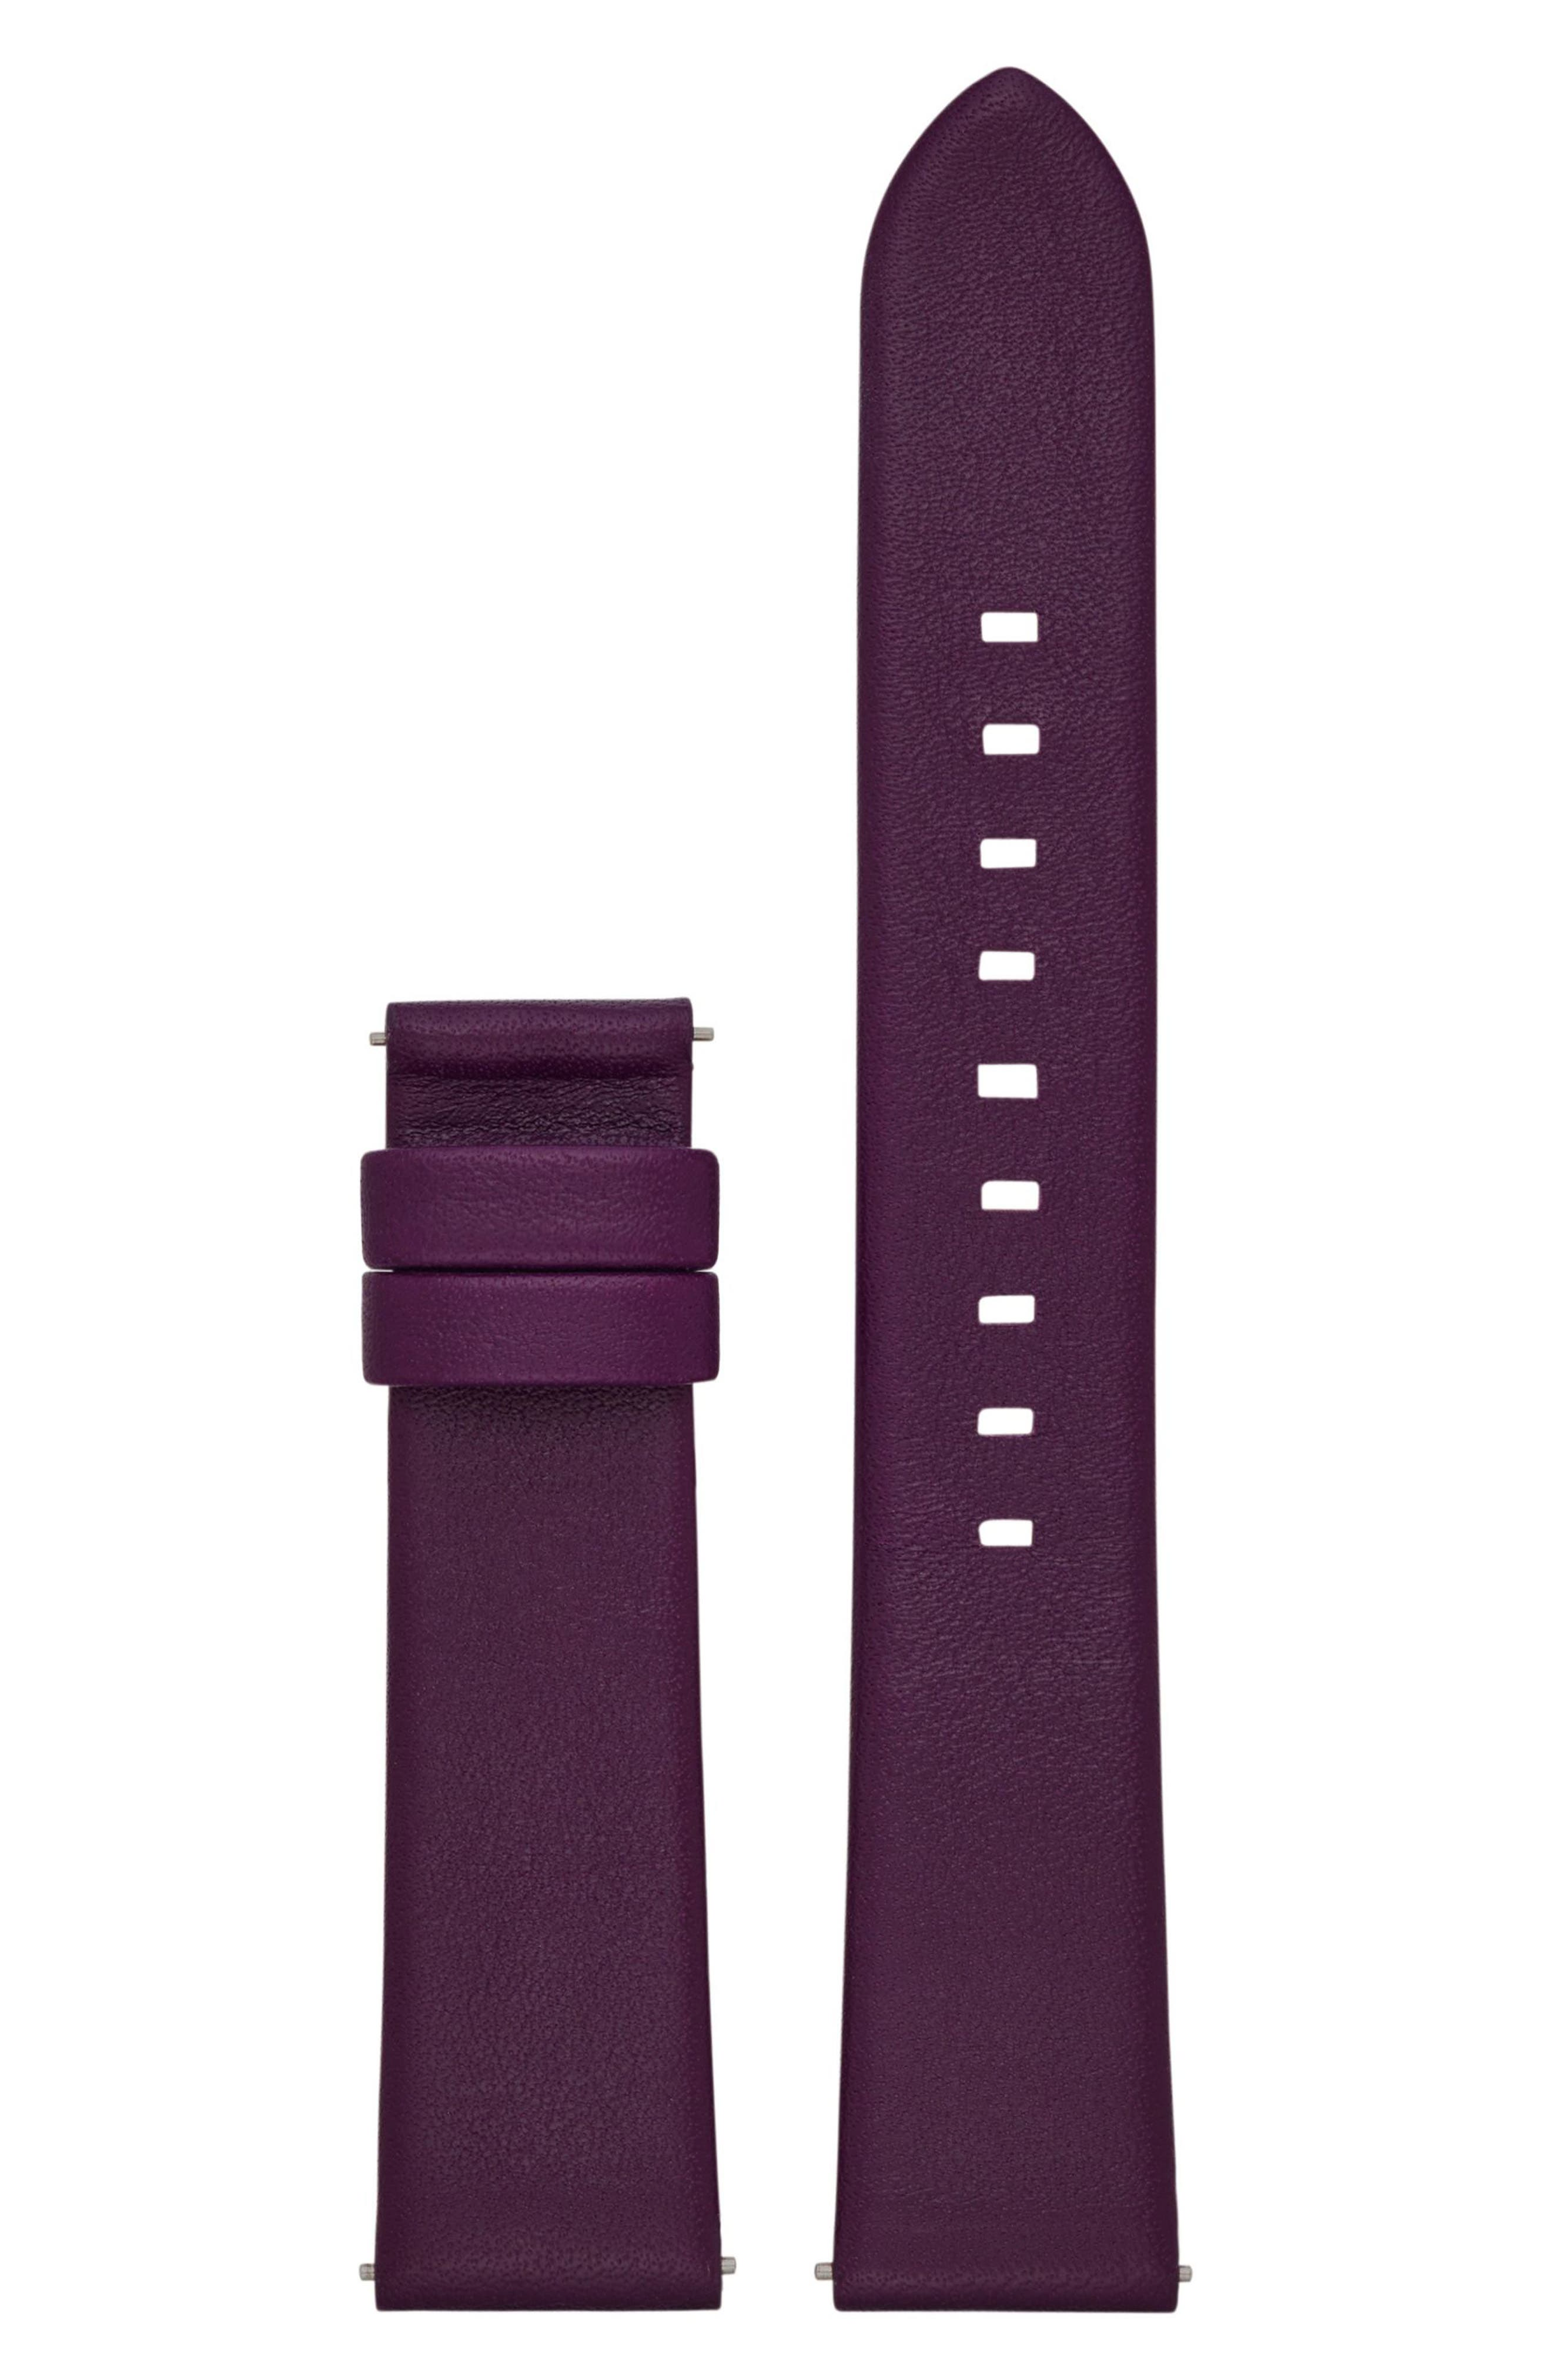 Alternate Image 1 Selected - Michael Kors Access Sofie 18mm Leather Watch Strap